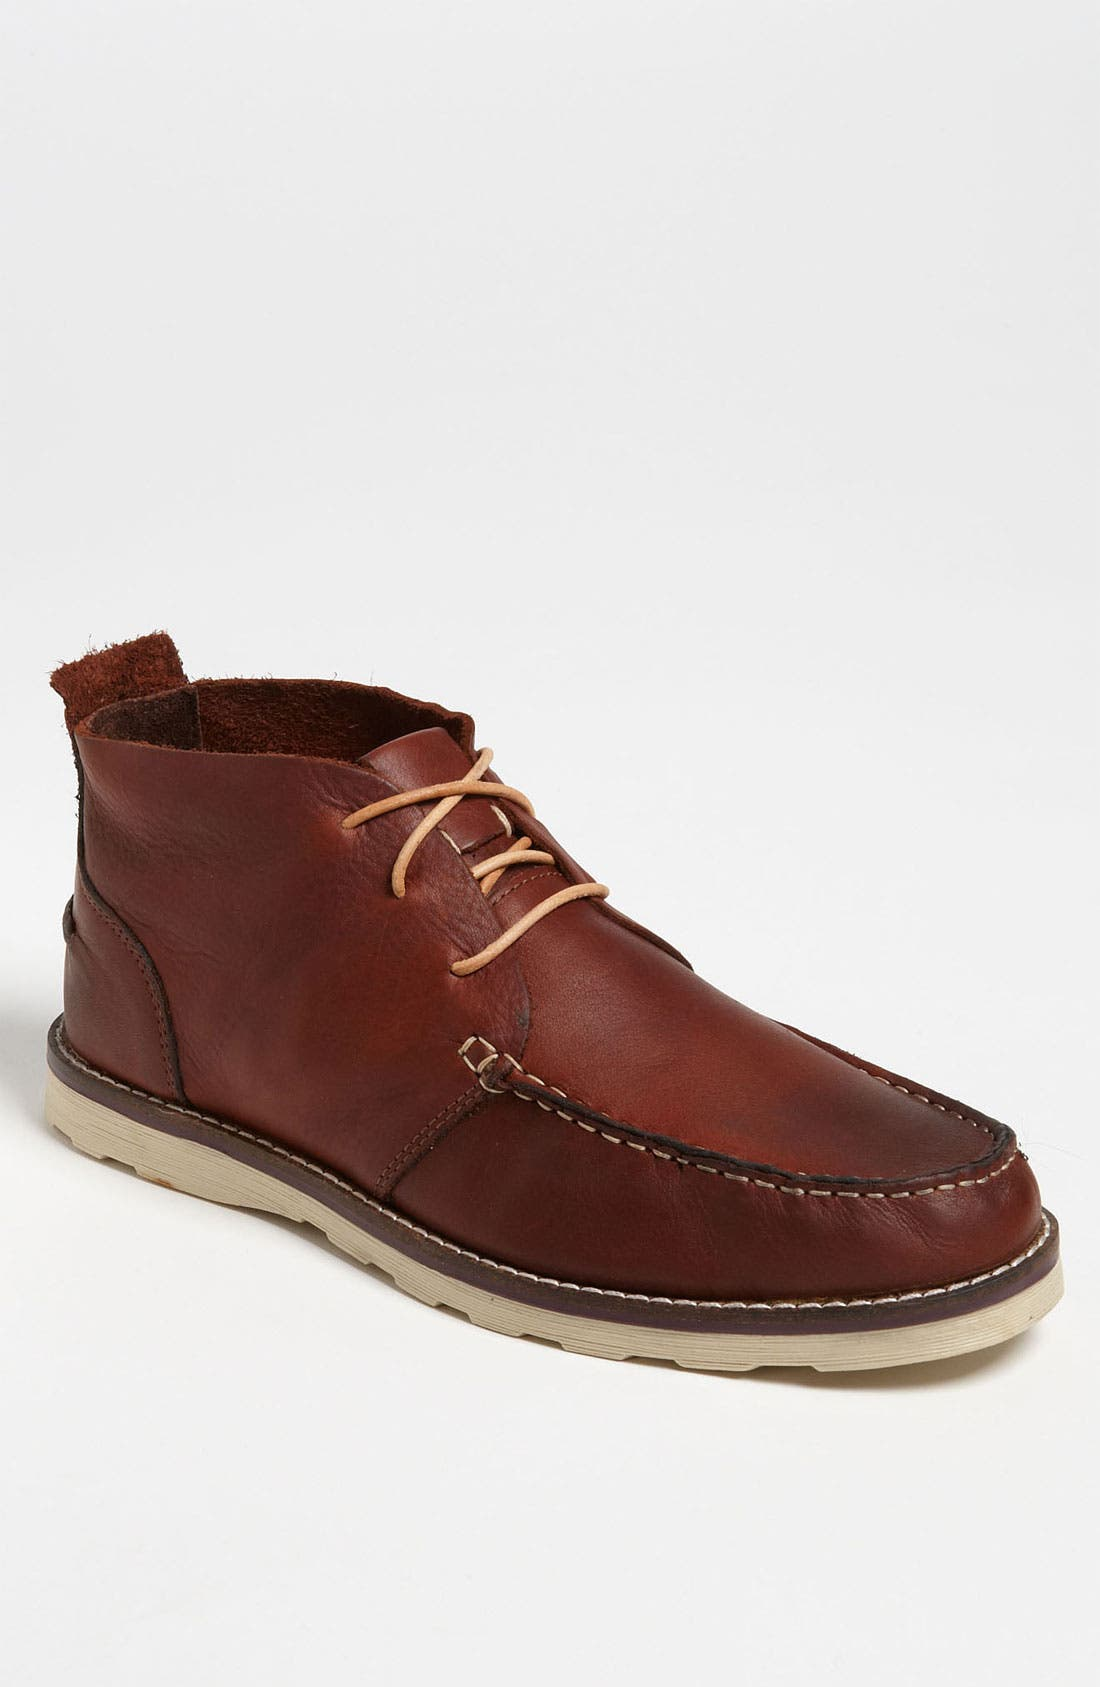 Alternate Image 1 Selected - Kenneth Cole Reaction 'Face Facts' Moc Toe Chukka Boot (Online Only)